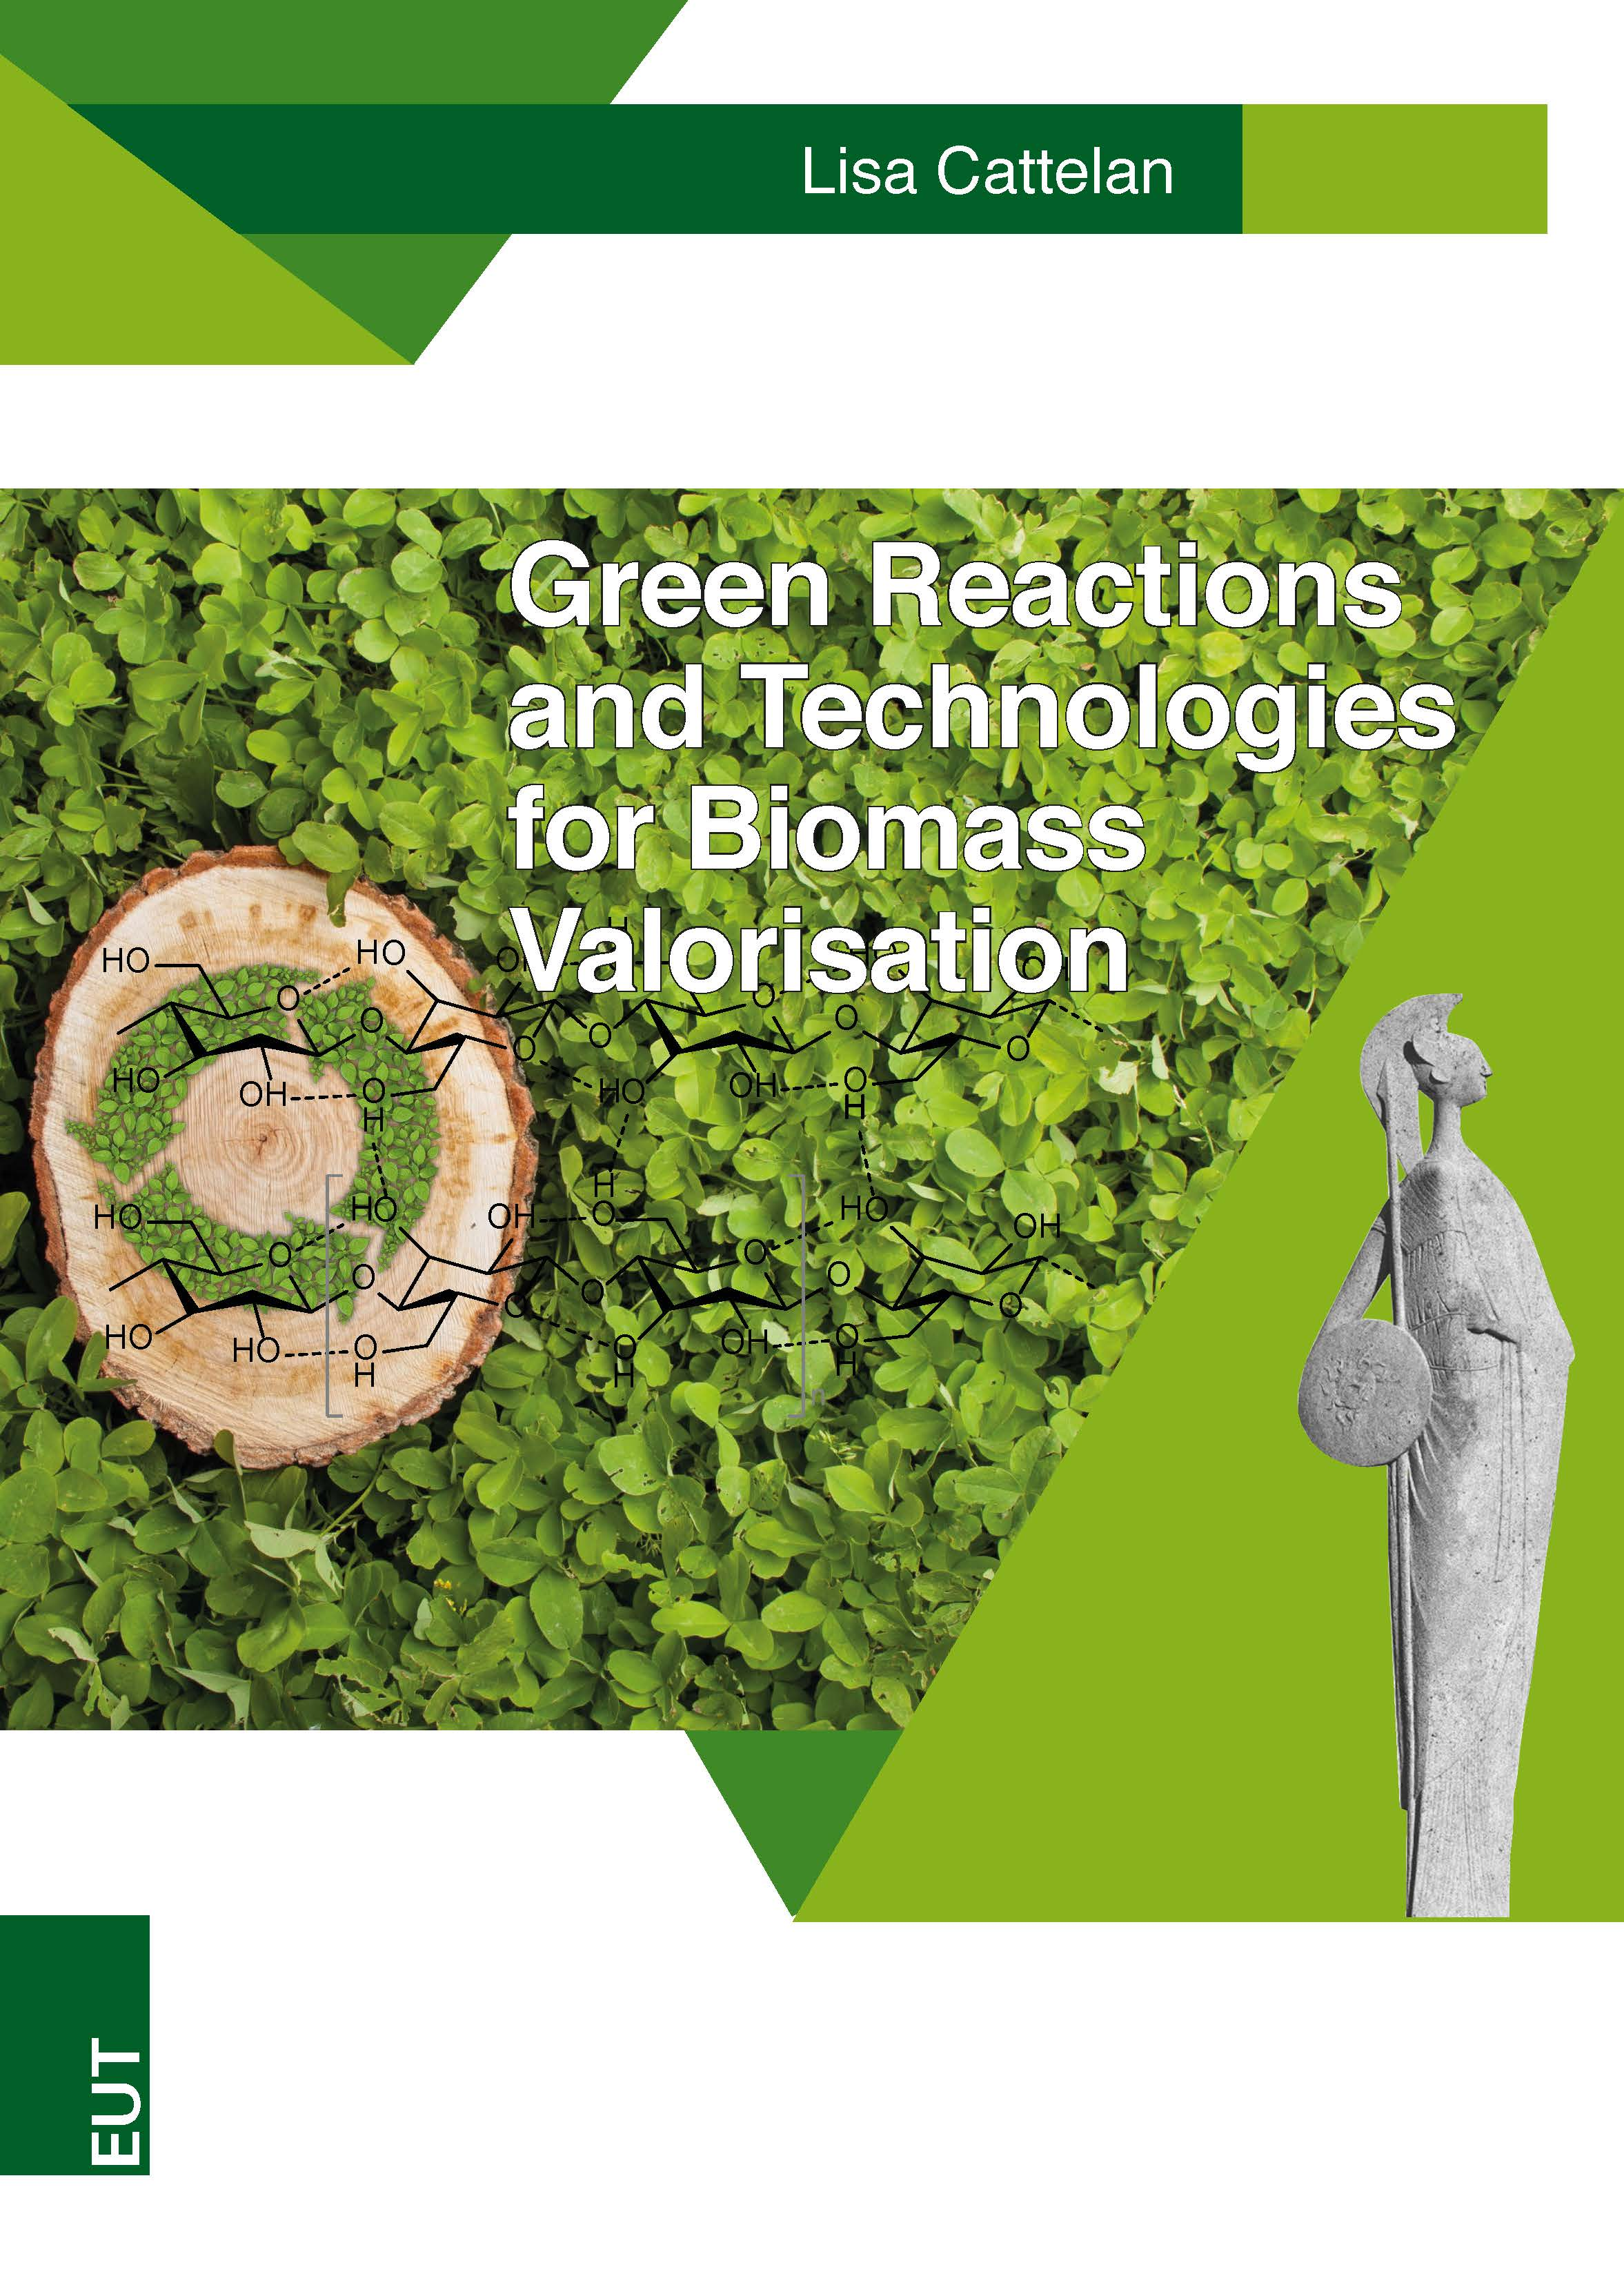 Green Reactions and Technologies for Biomass Valorisation